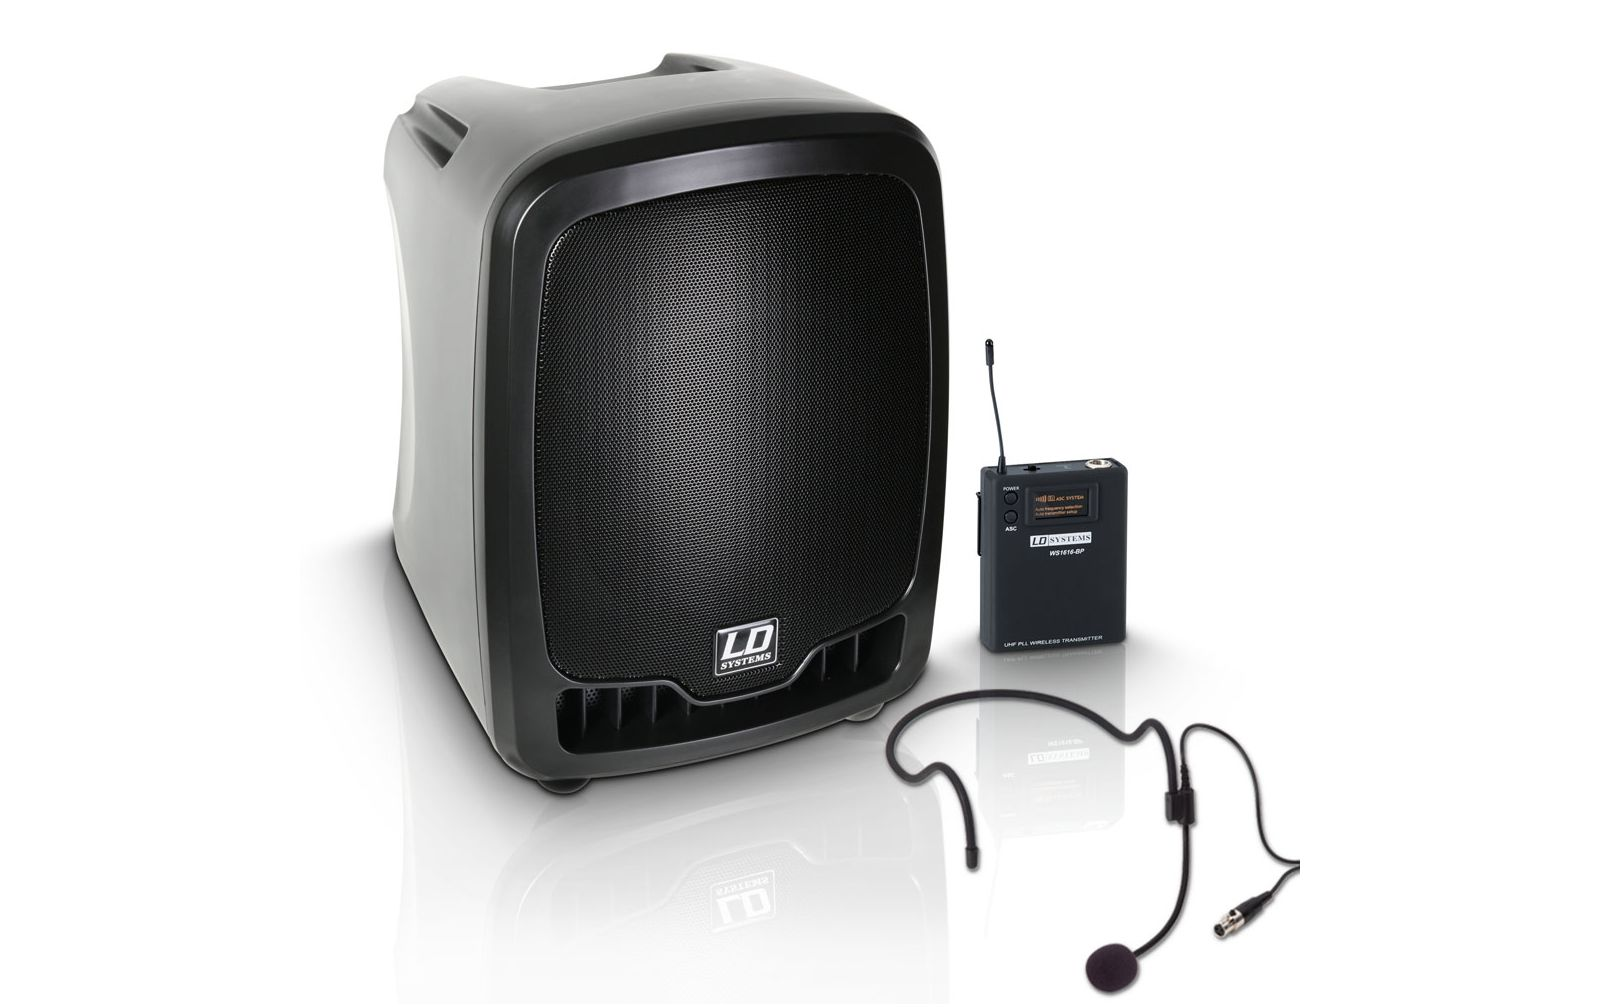 ld-systems-roadboy-65-portables-soundsystem-mit-headset-frequenzbereich-584-607-mhz, 475.00 EUR @ music-and-more-store